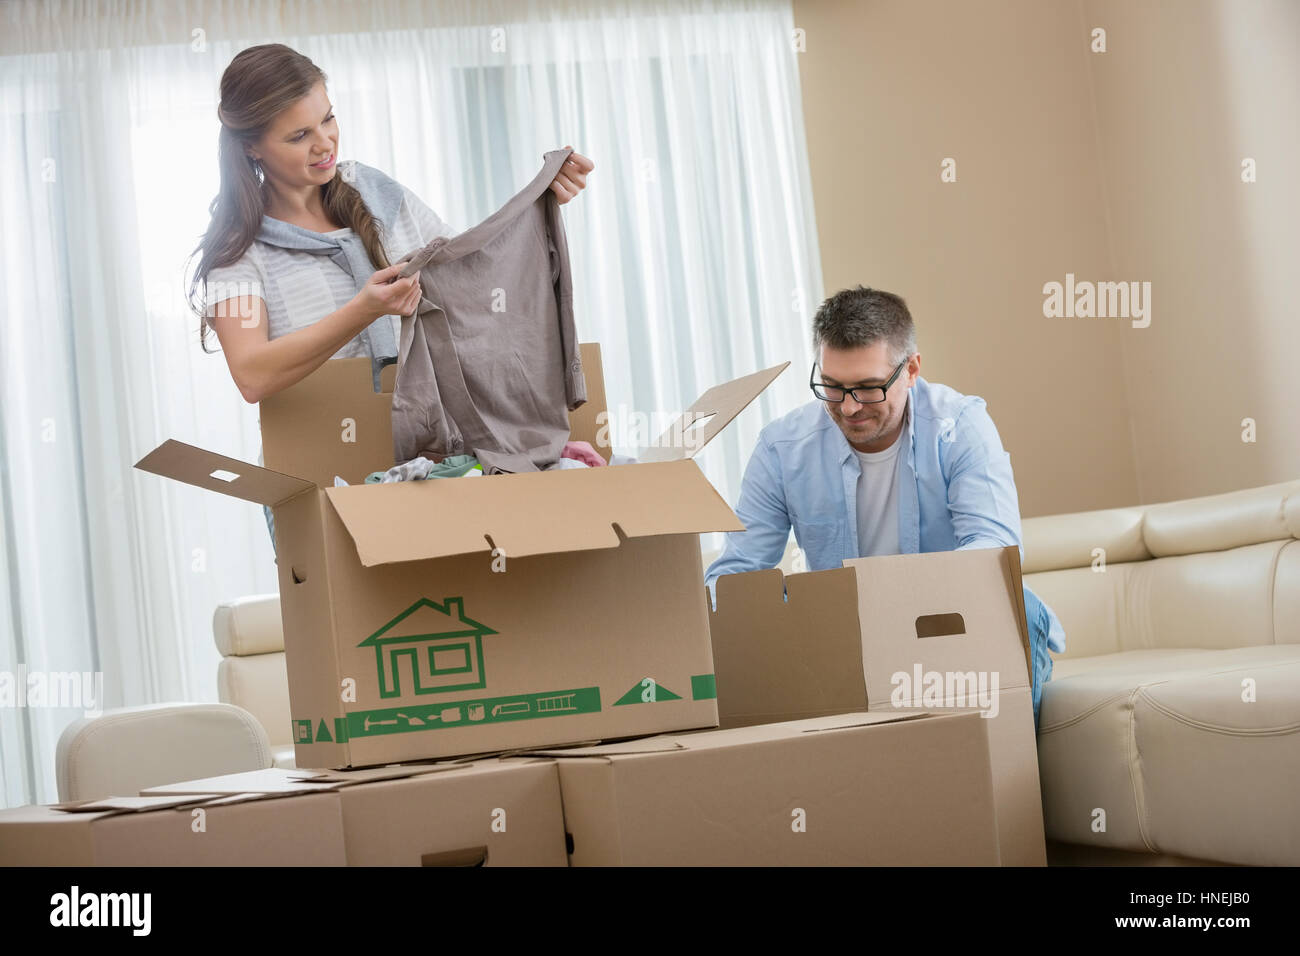 Mid-adult couple unpacking cardboard boxes in new home - Stock Image